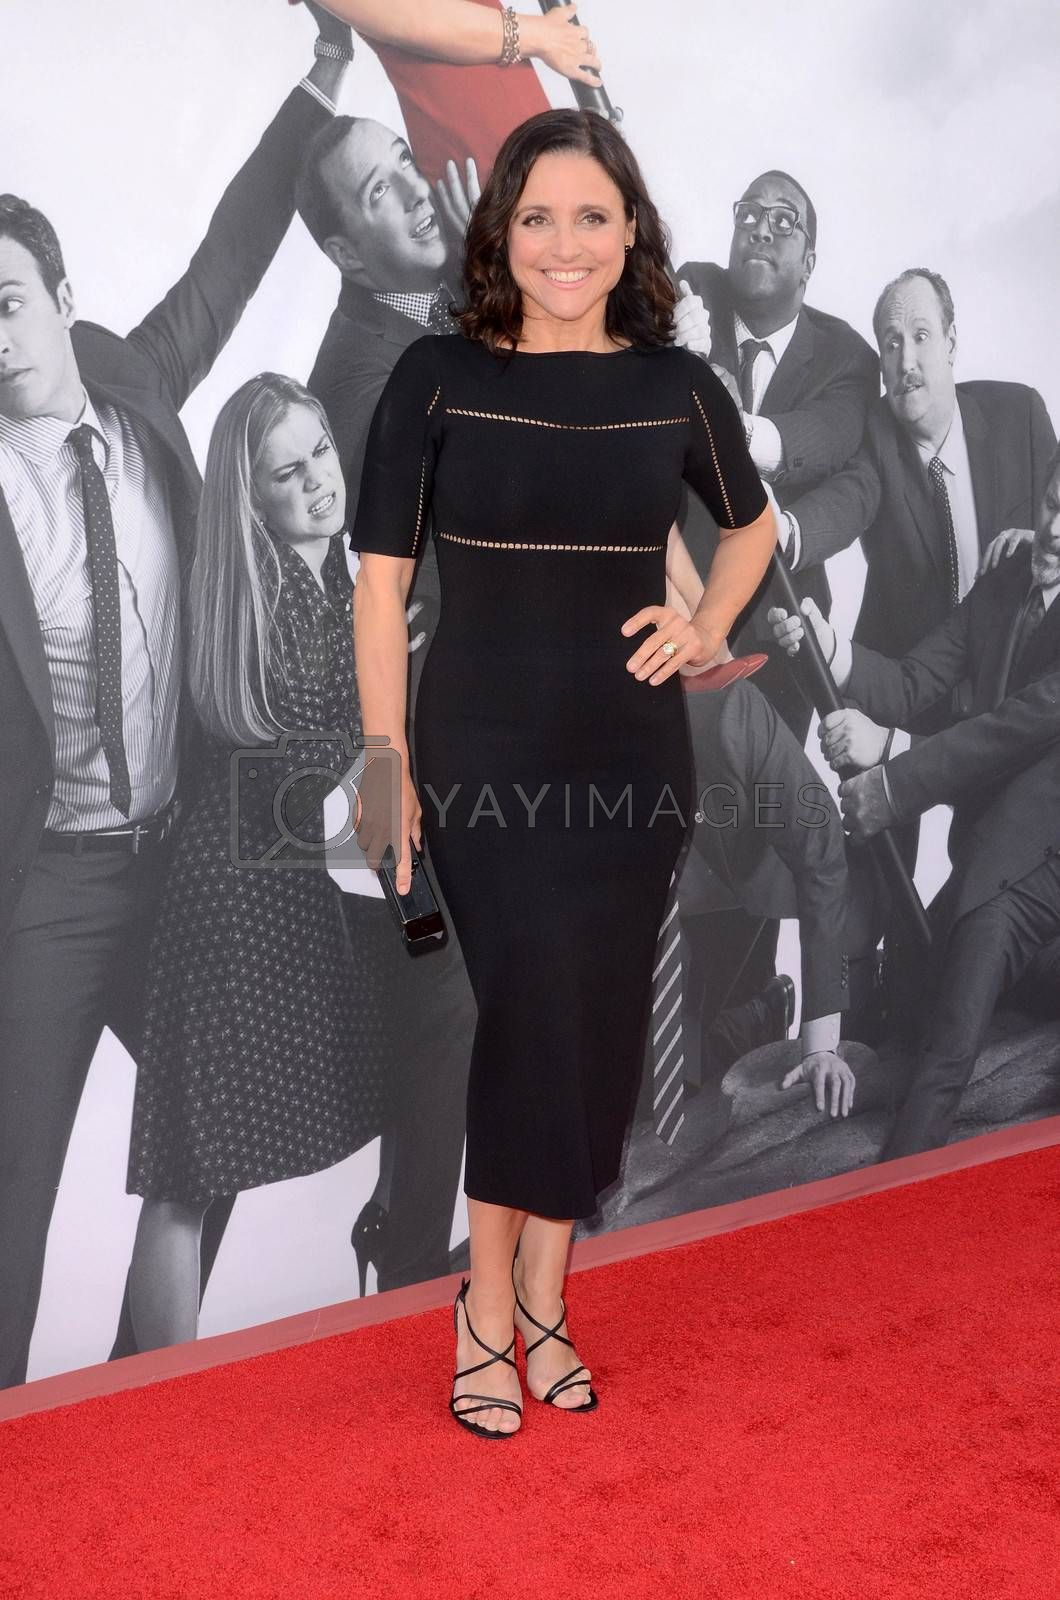 Julia Louis-Dreyfus at FYC for HBO's series VEEP 6th Season, Television Academy, North Hollywood, CA 05-25-17/ImageCollect by ImageCollect